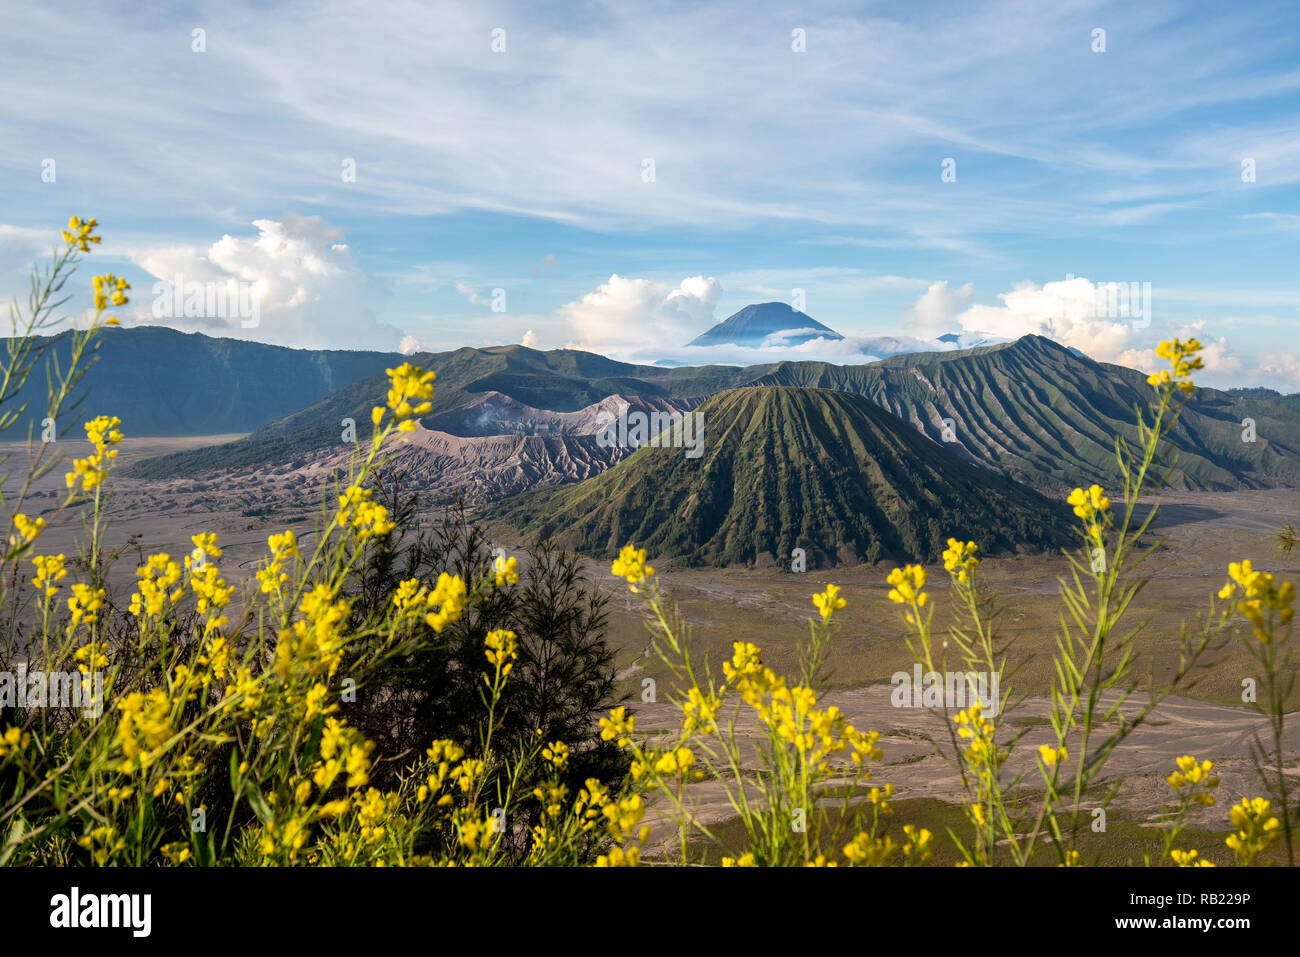 Bromo mountain with yellow flower on foreground - Stock Image